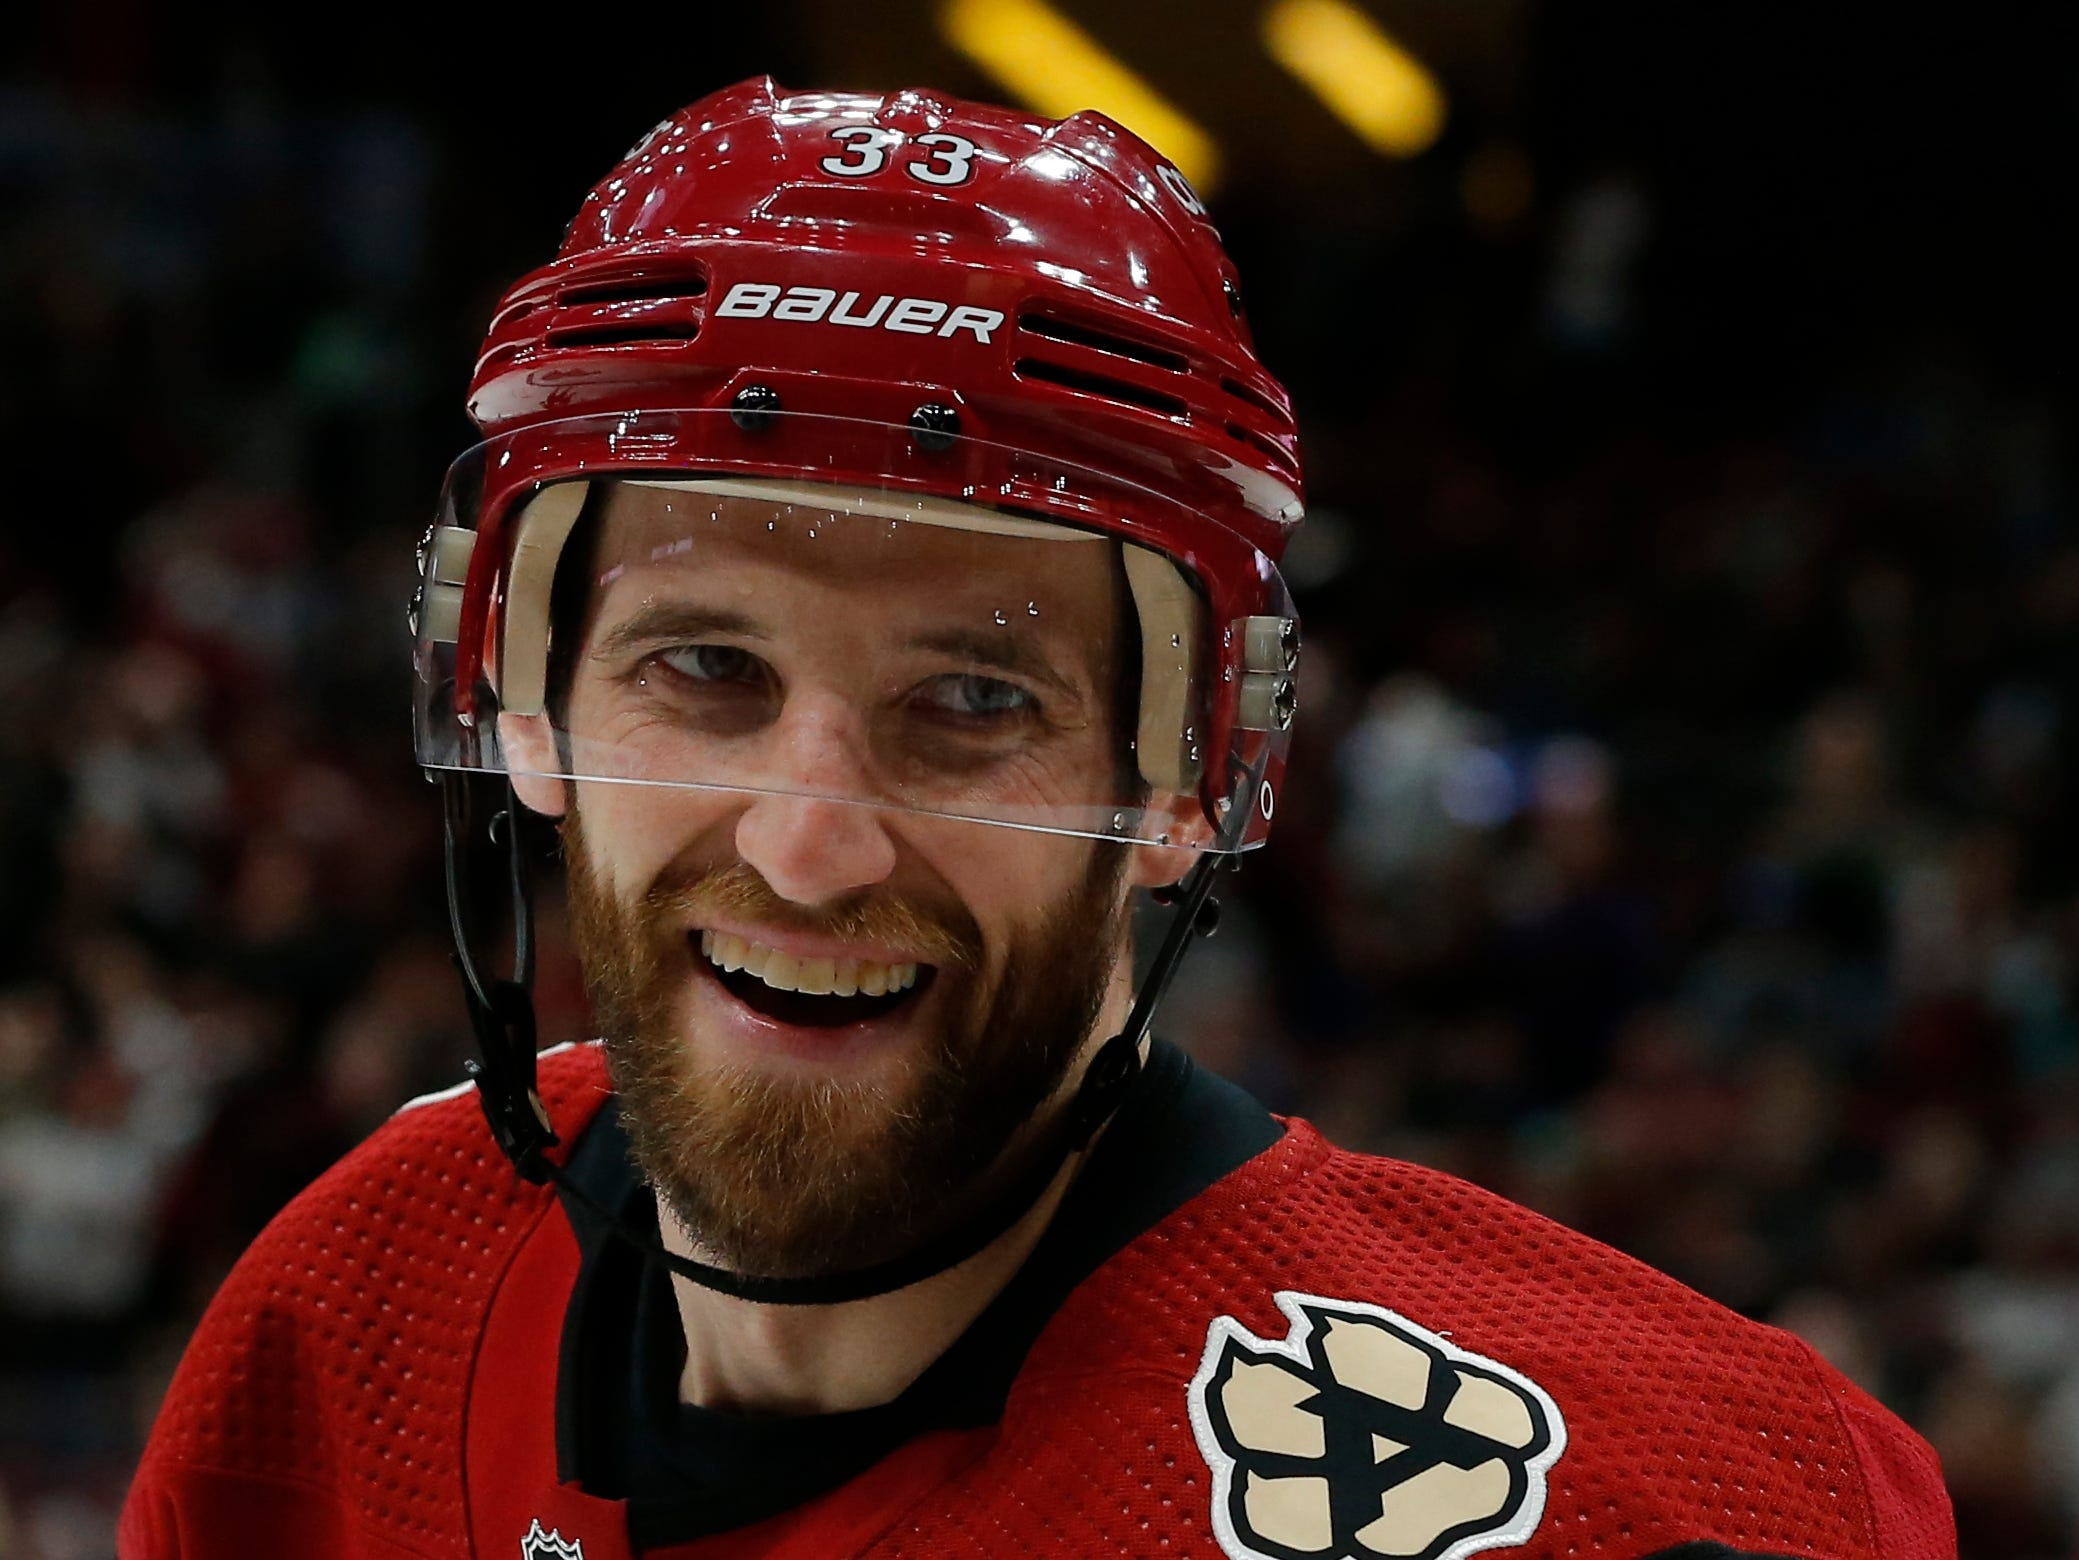 Arizona Coyotes defenseman Alex Goligoski (33) reacts after scoring a goal against the Anaheim Ducks in the second period during an NHL hockey game, Thursday, March 14, 2019, in Glendale, Ariz.